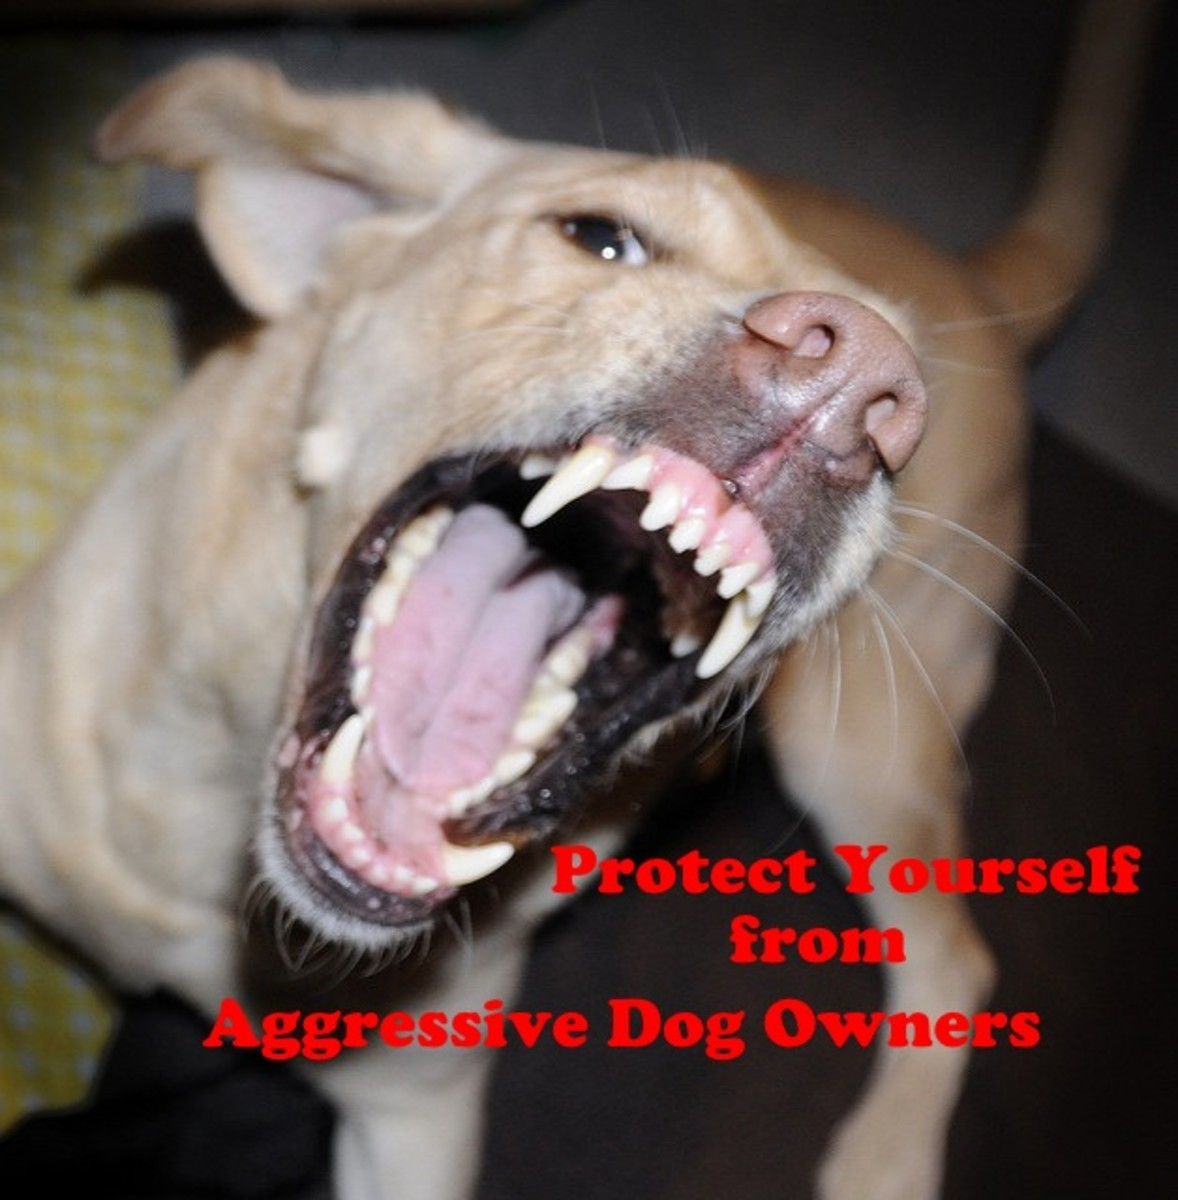 How to Protect Yourself From Aggressive Dogs and Their Owners